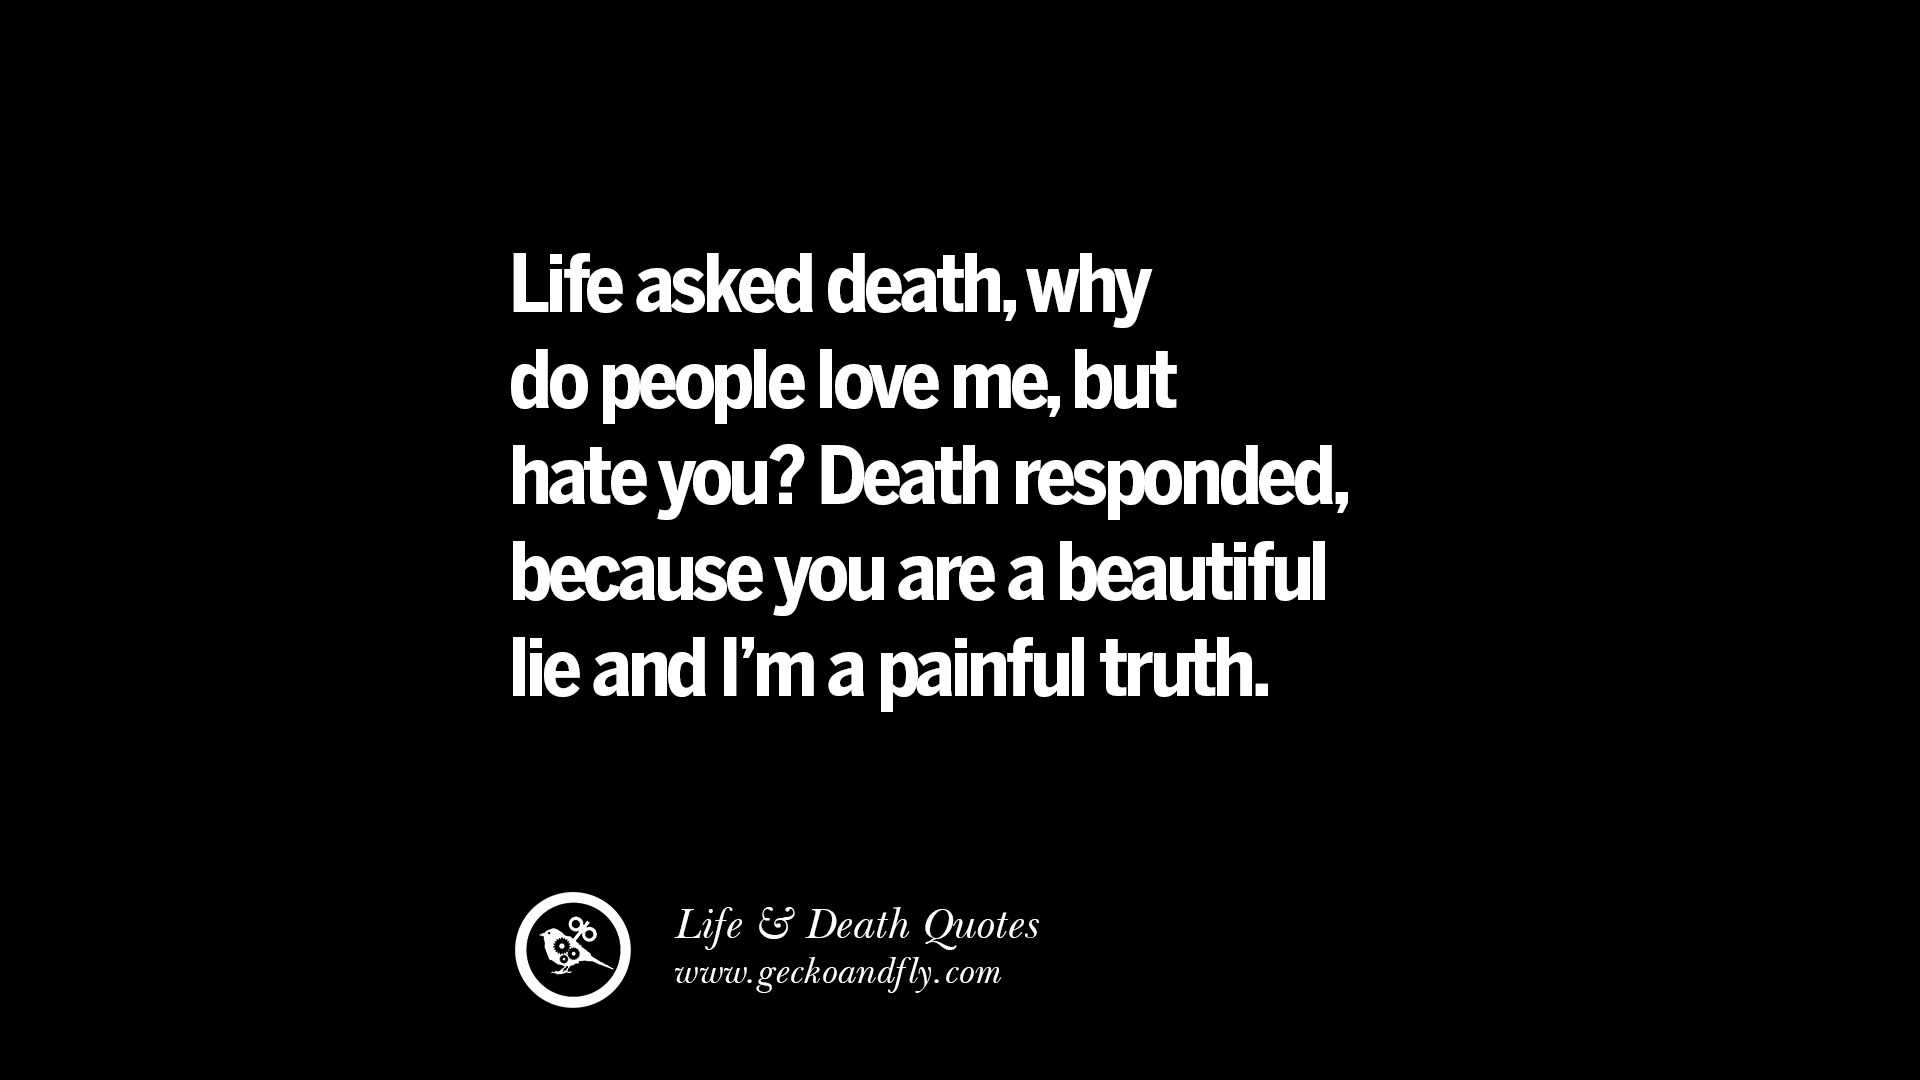 20 Inspirational Quotes on Life, Death and Losing Someone